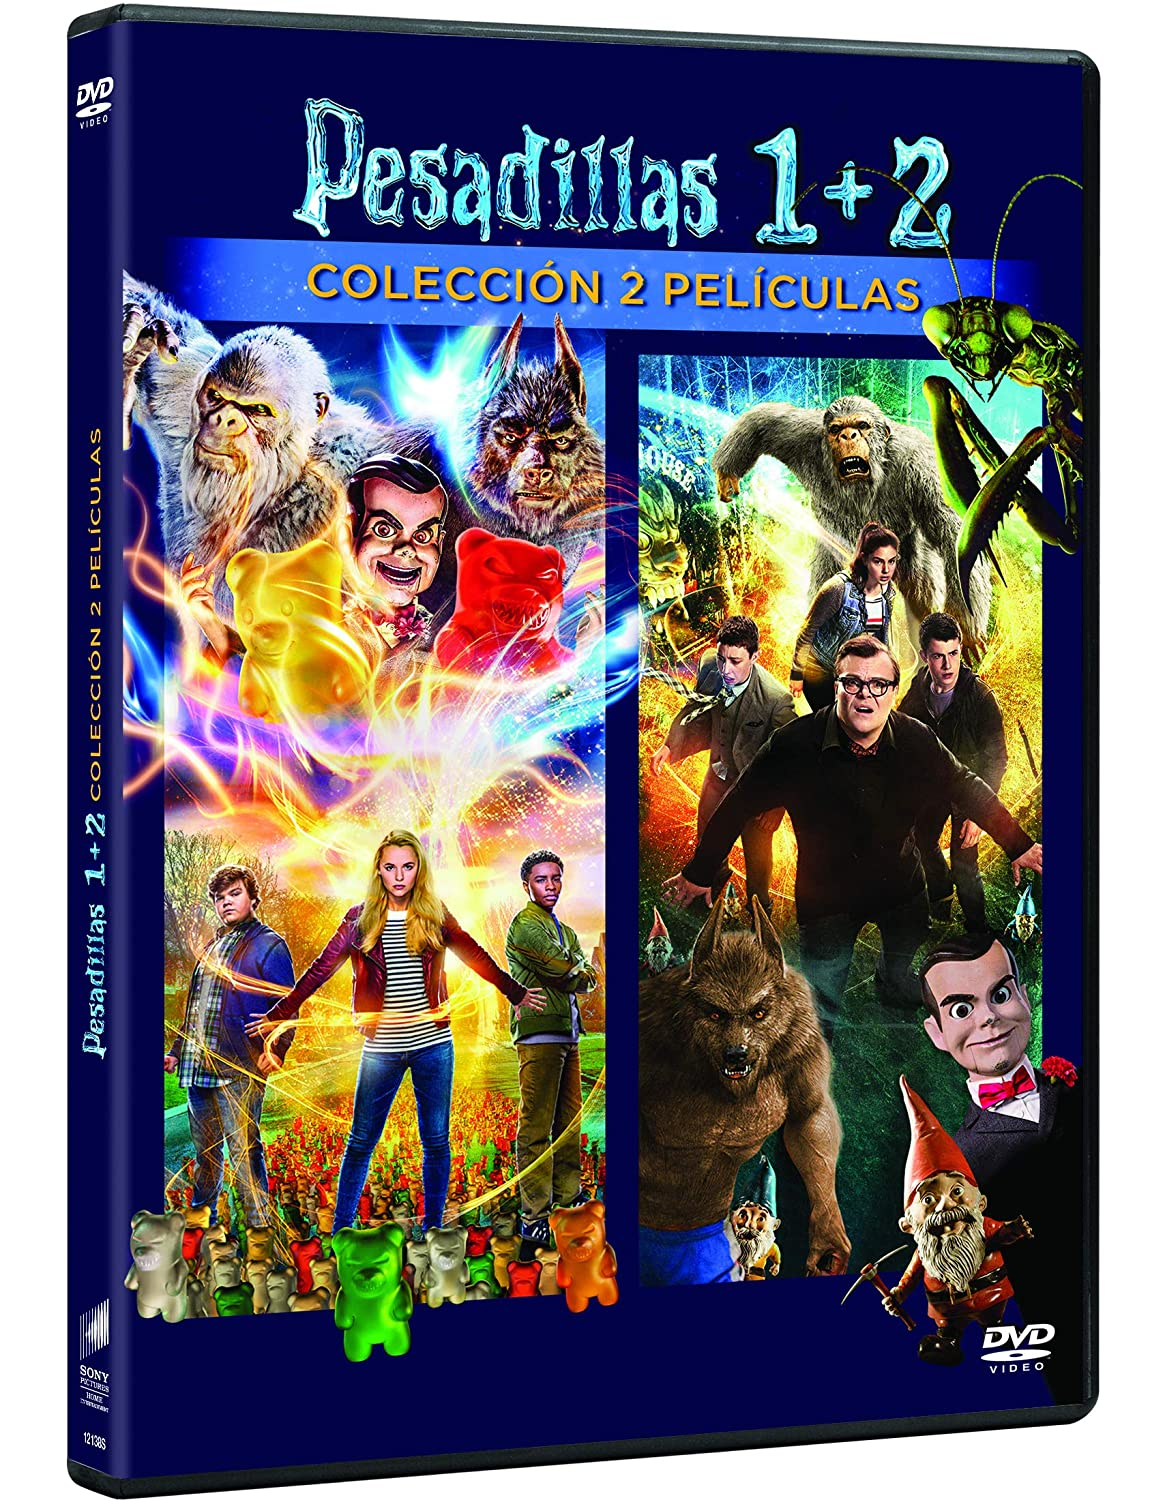 Pack: Pesadillas 1 + Pesadillas 2 [DVD]: Amazon.es: Wendi Mclendon-Covey, Madison Iseman, Jeremy Ray Taylor, Jack Black, Dylan Minnette, Odeya Rush, Ari Sandel, Rob Letterman, Wendi Mclendon-Covey, Madison Iseman, Columbia Pictures Corporation: